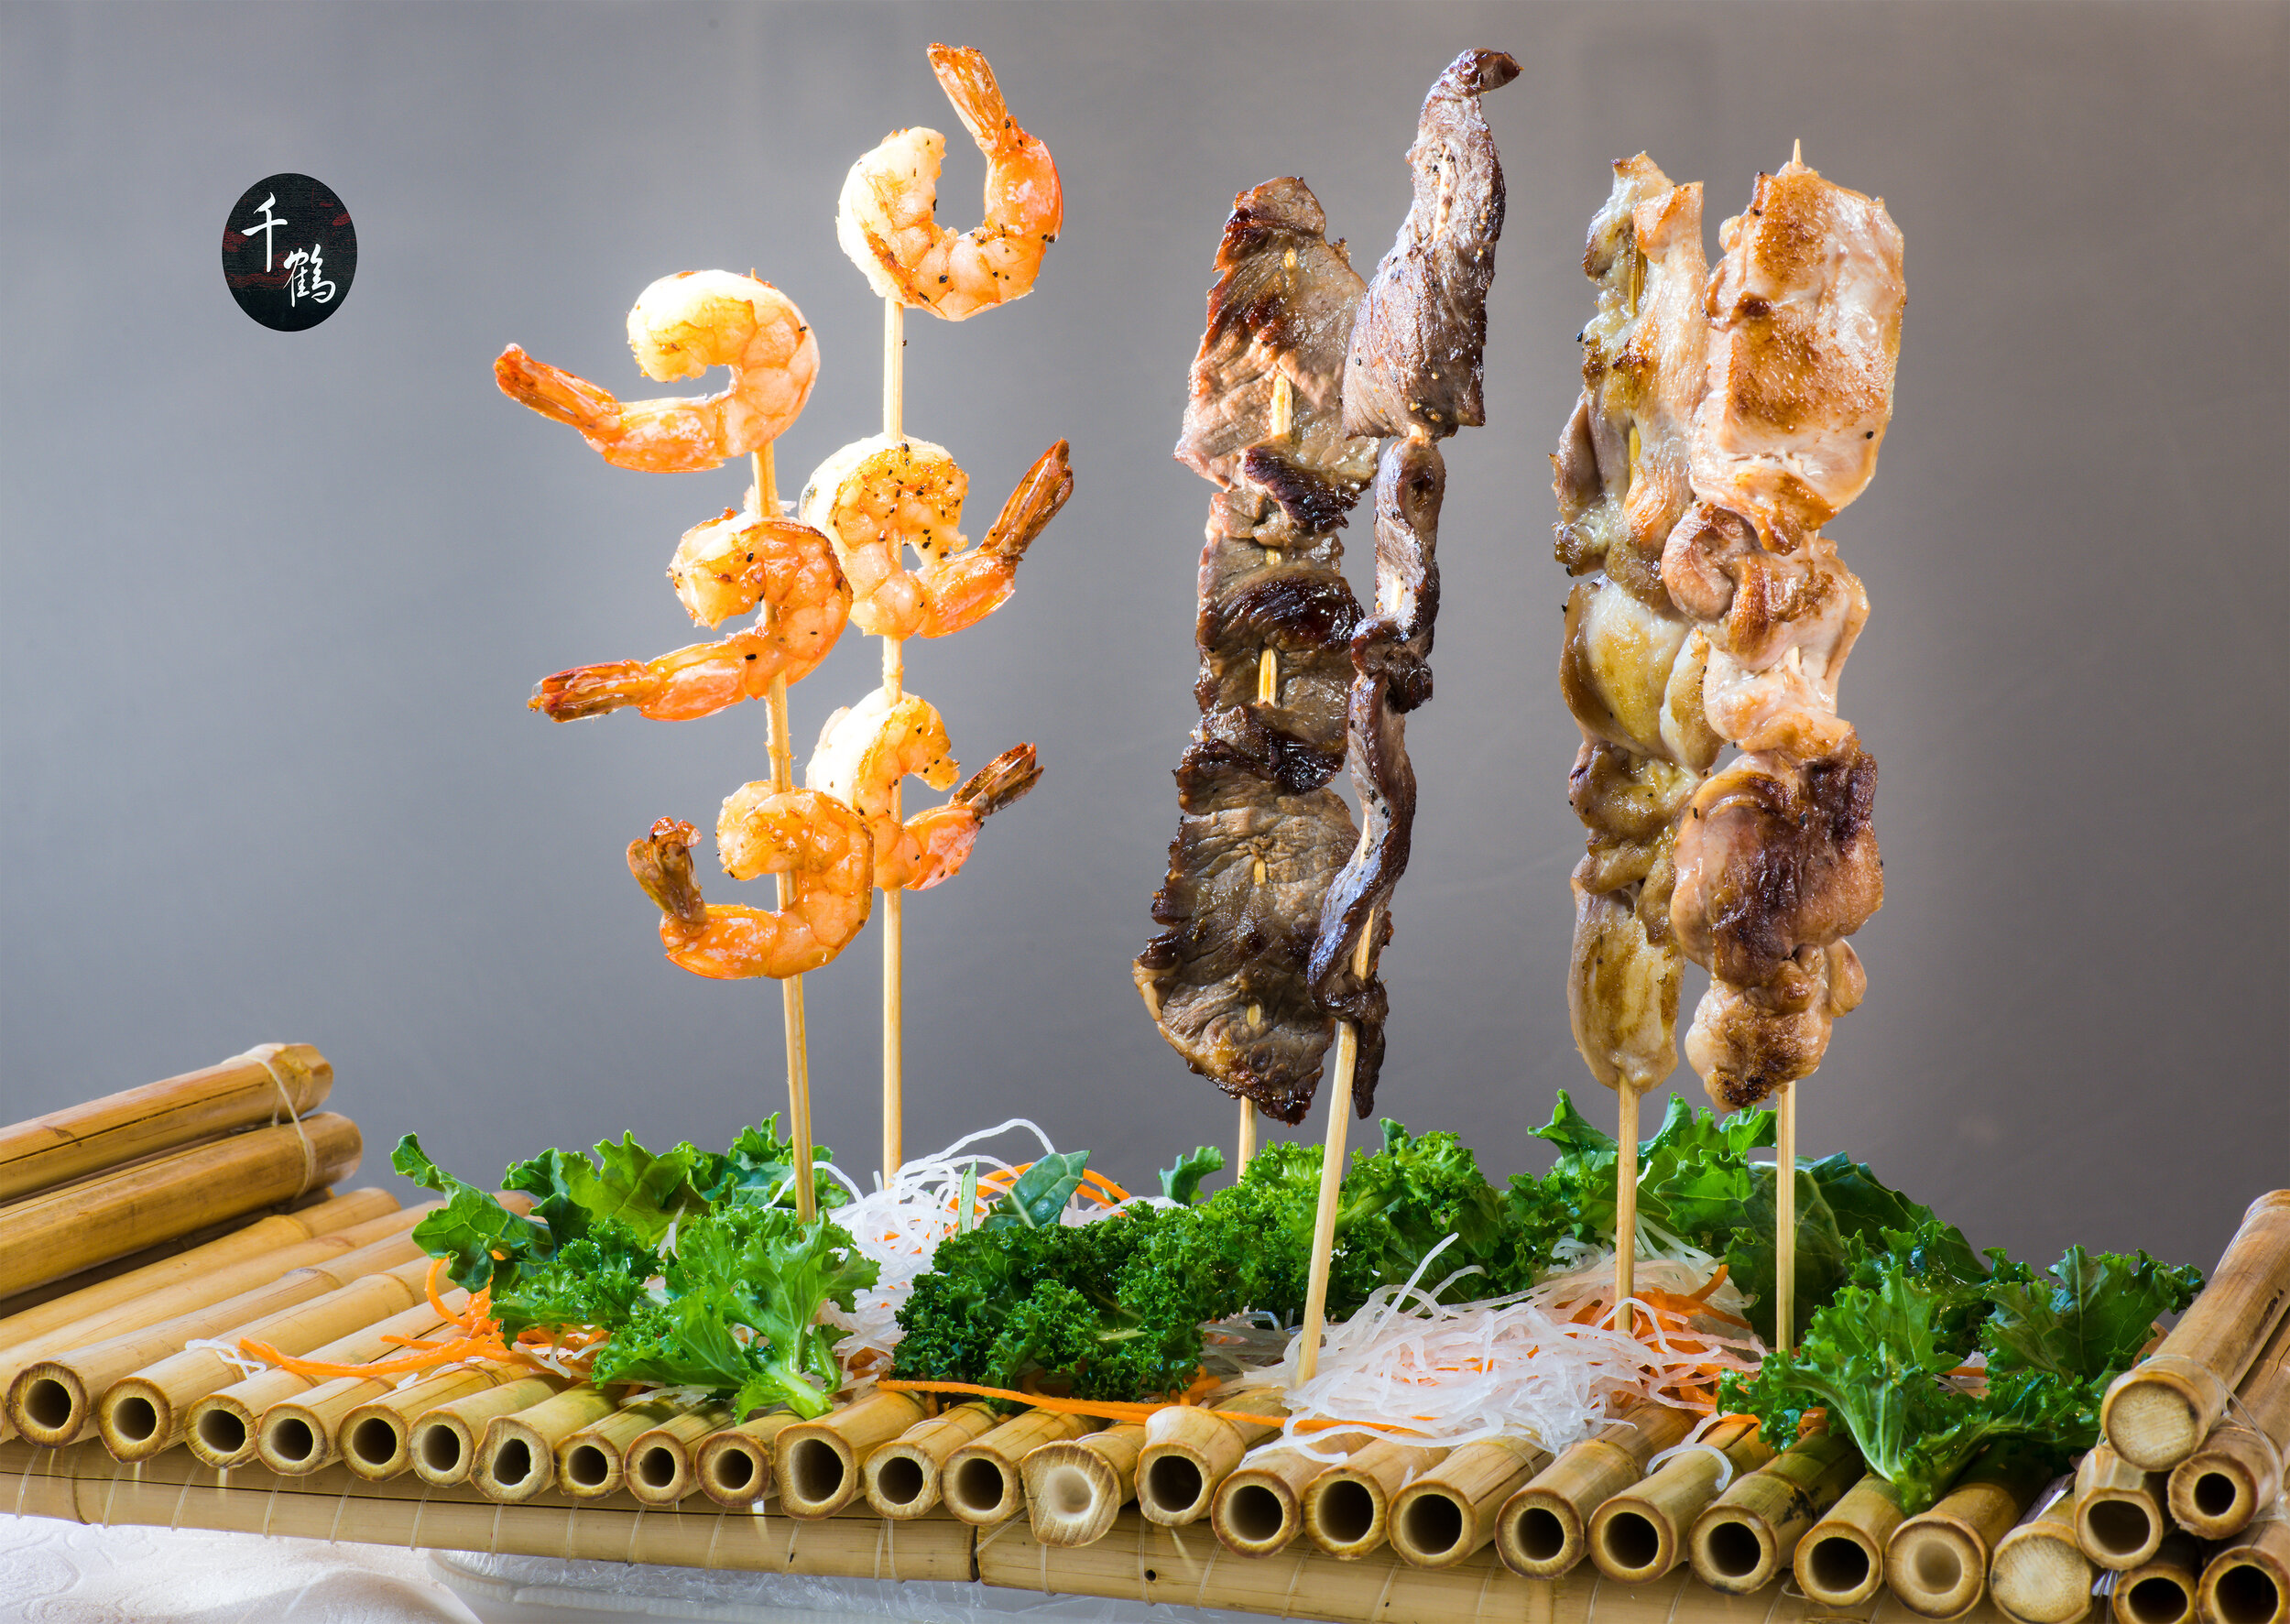 BBQ Skewer Shrimp, Beef or Chicken $5.99 for 2 skewers of the same choice